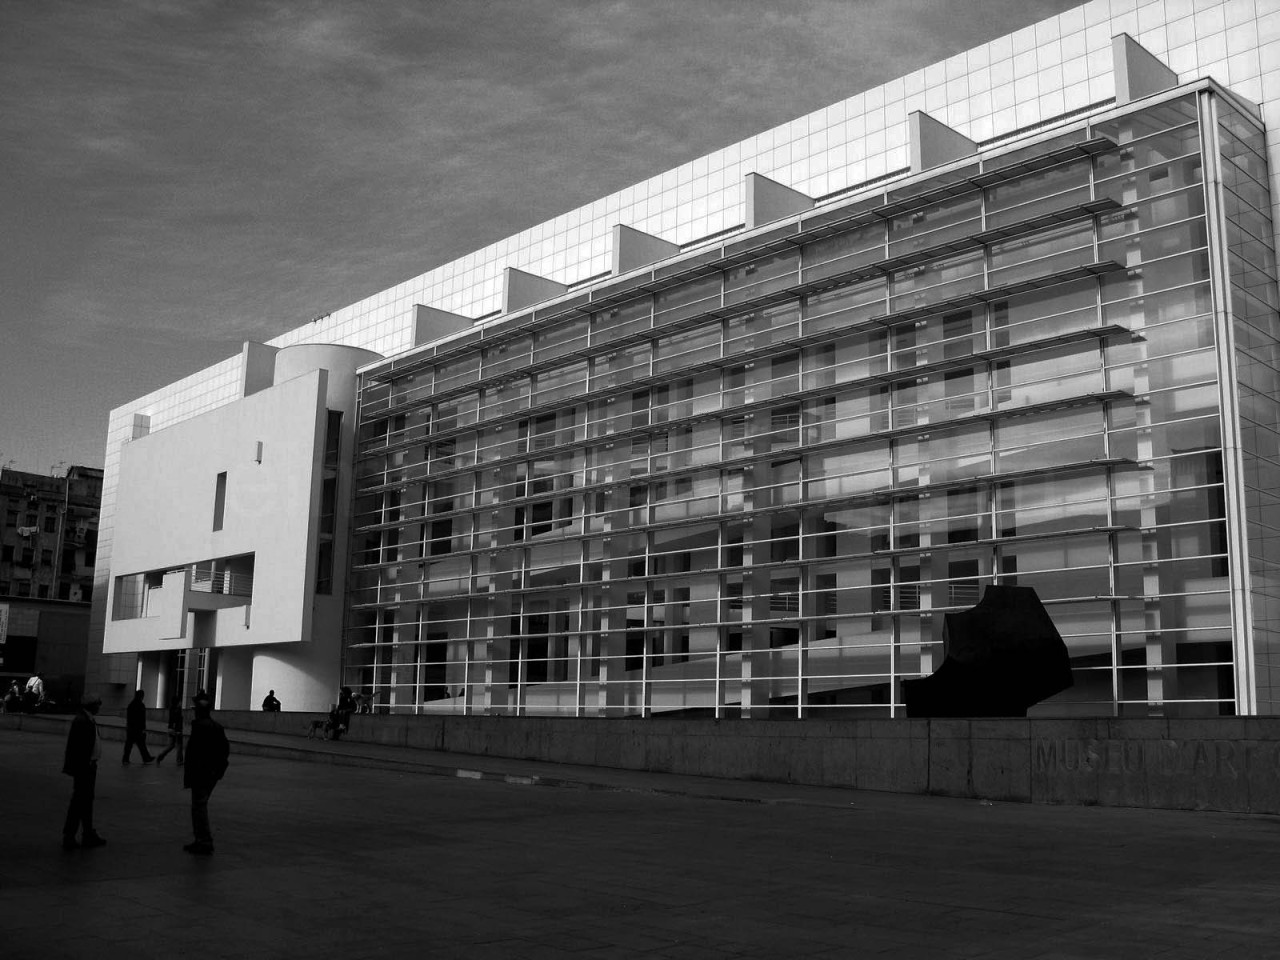 macba-edificio-1